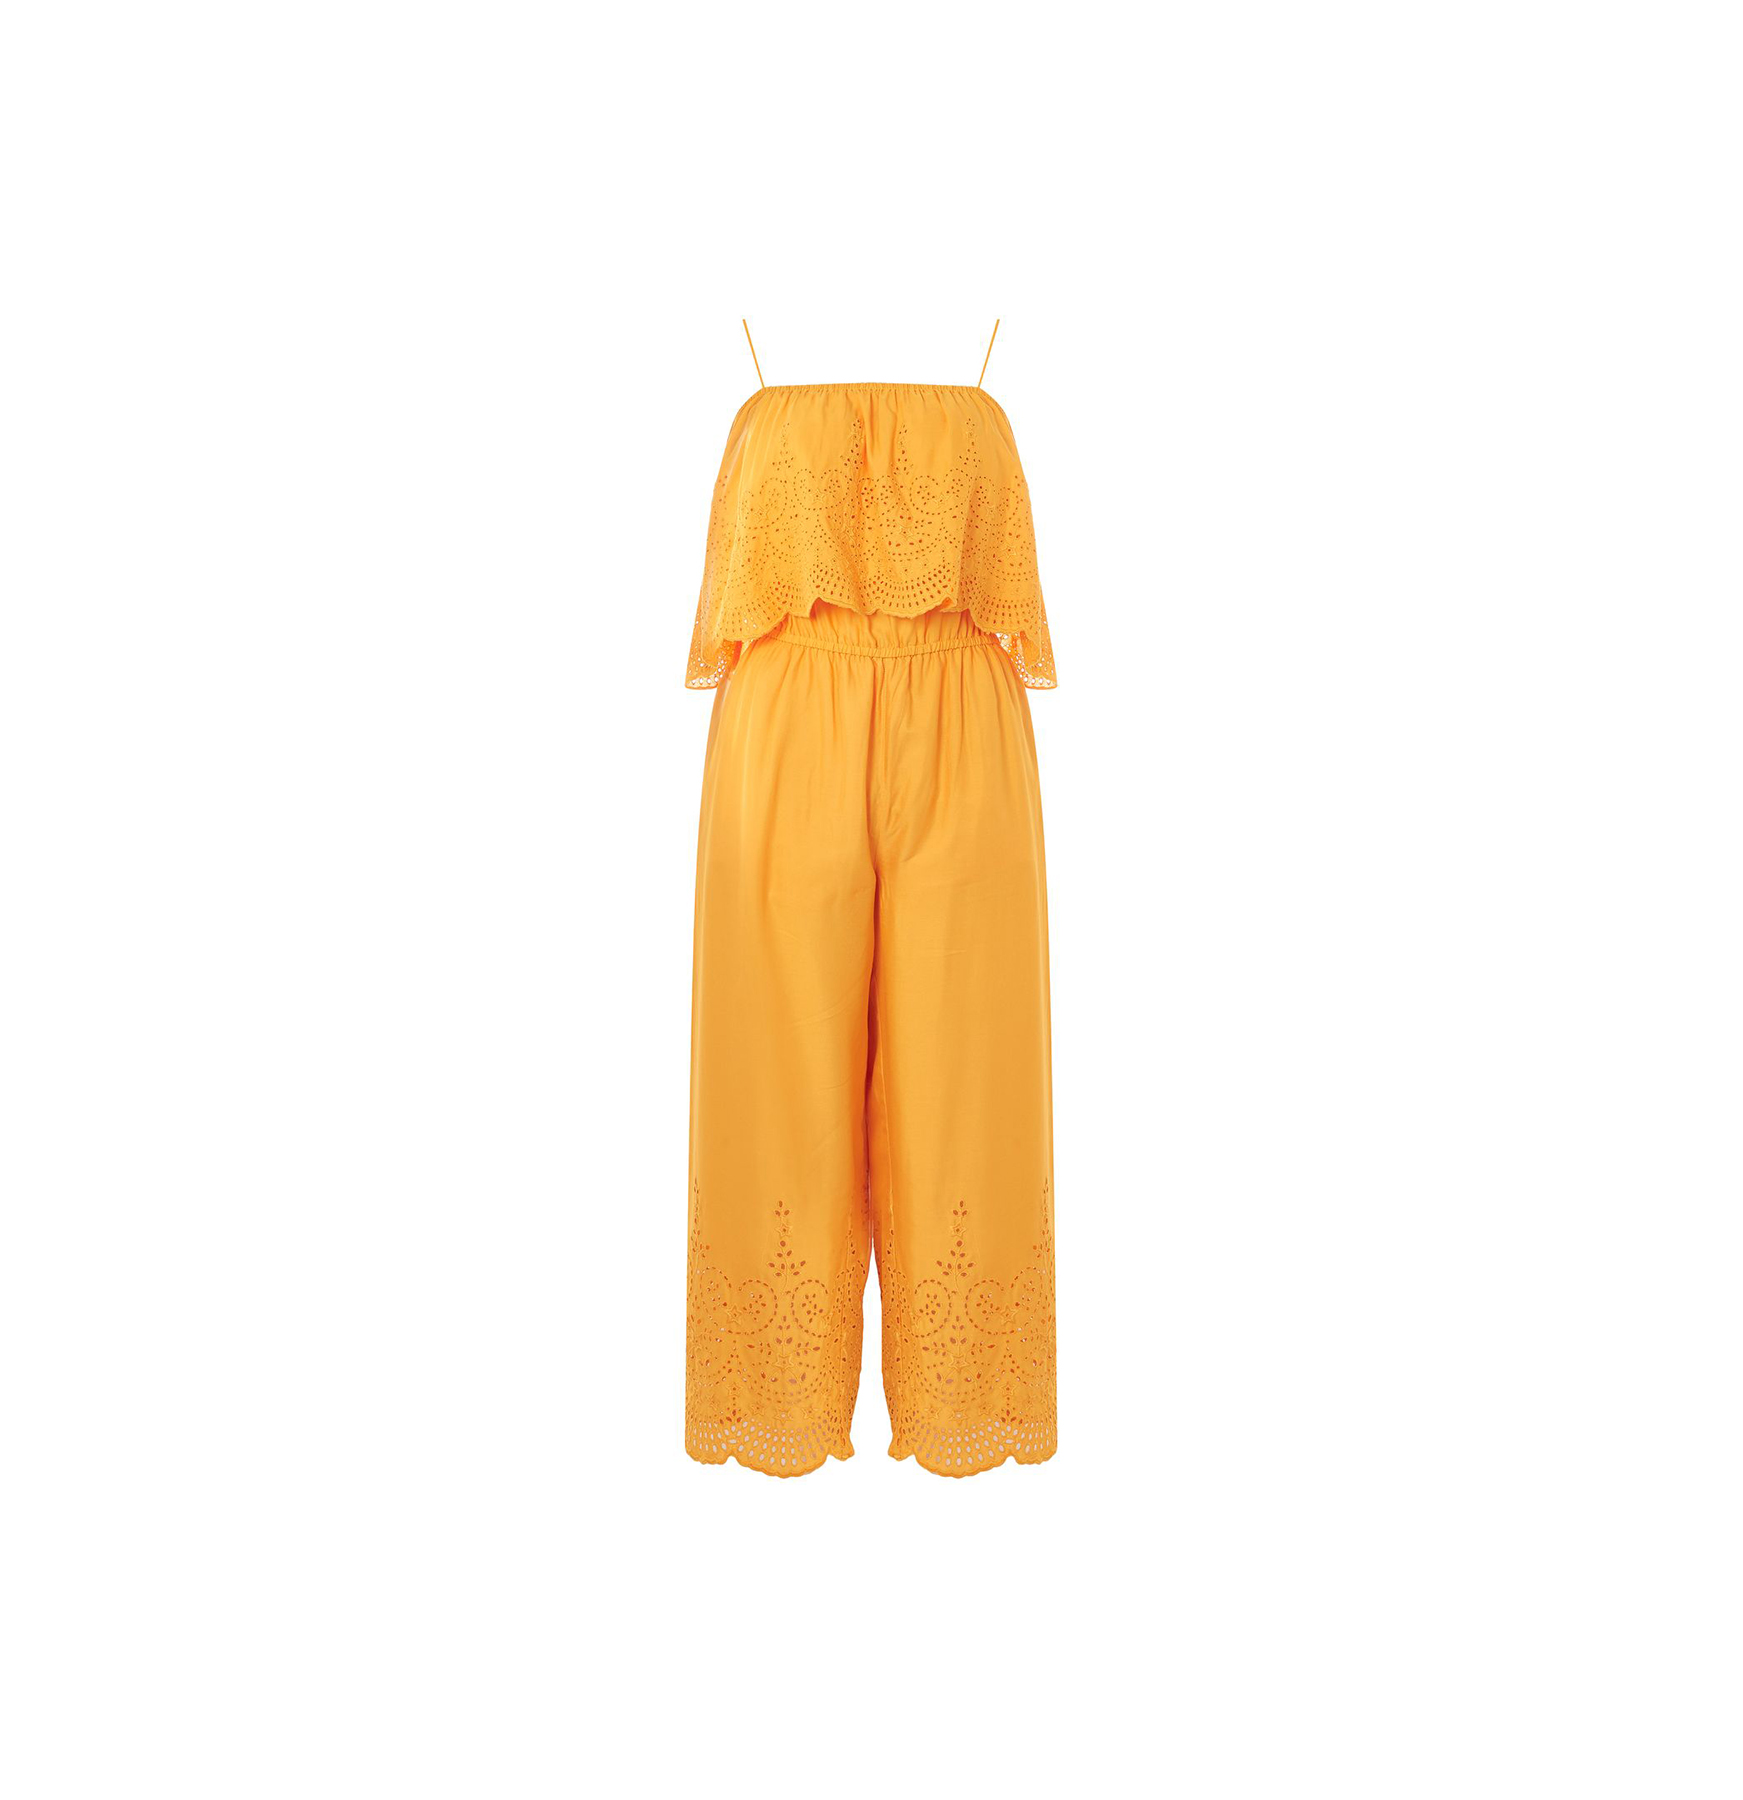 Topshop Broderie Anglaise Jumpsuit